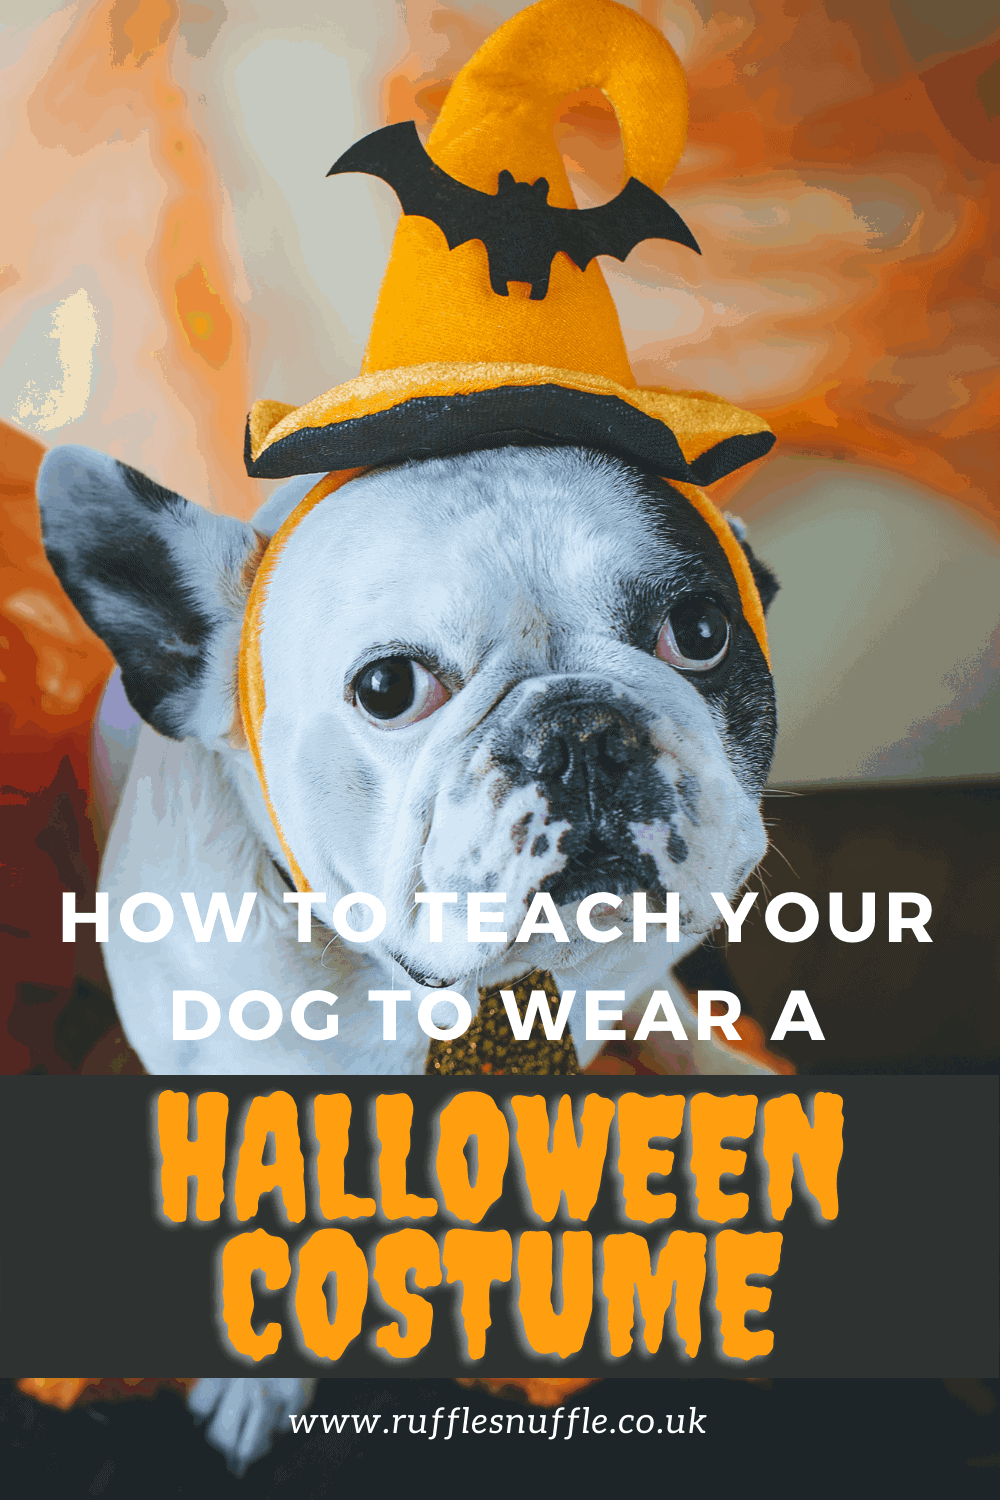 Halloween costume ideas for dogs and how to teach your dog to wear one.